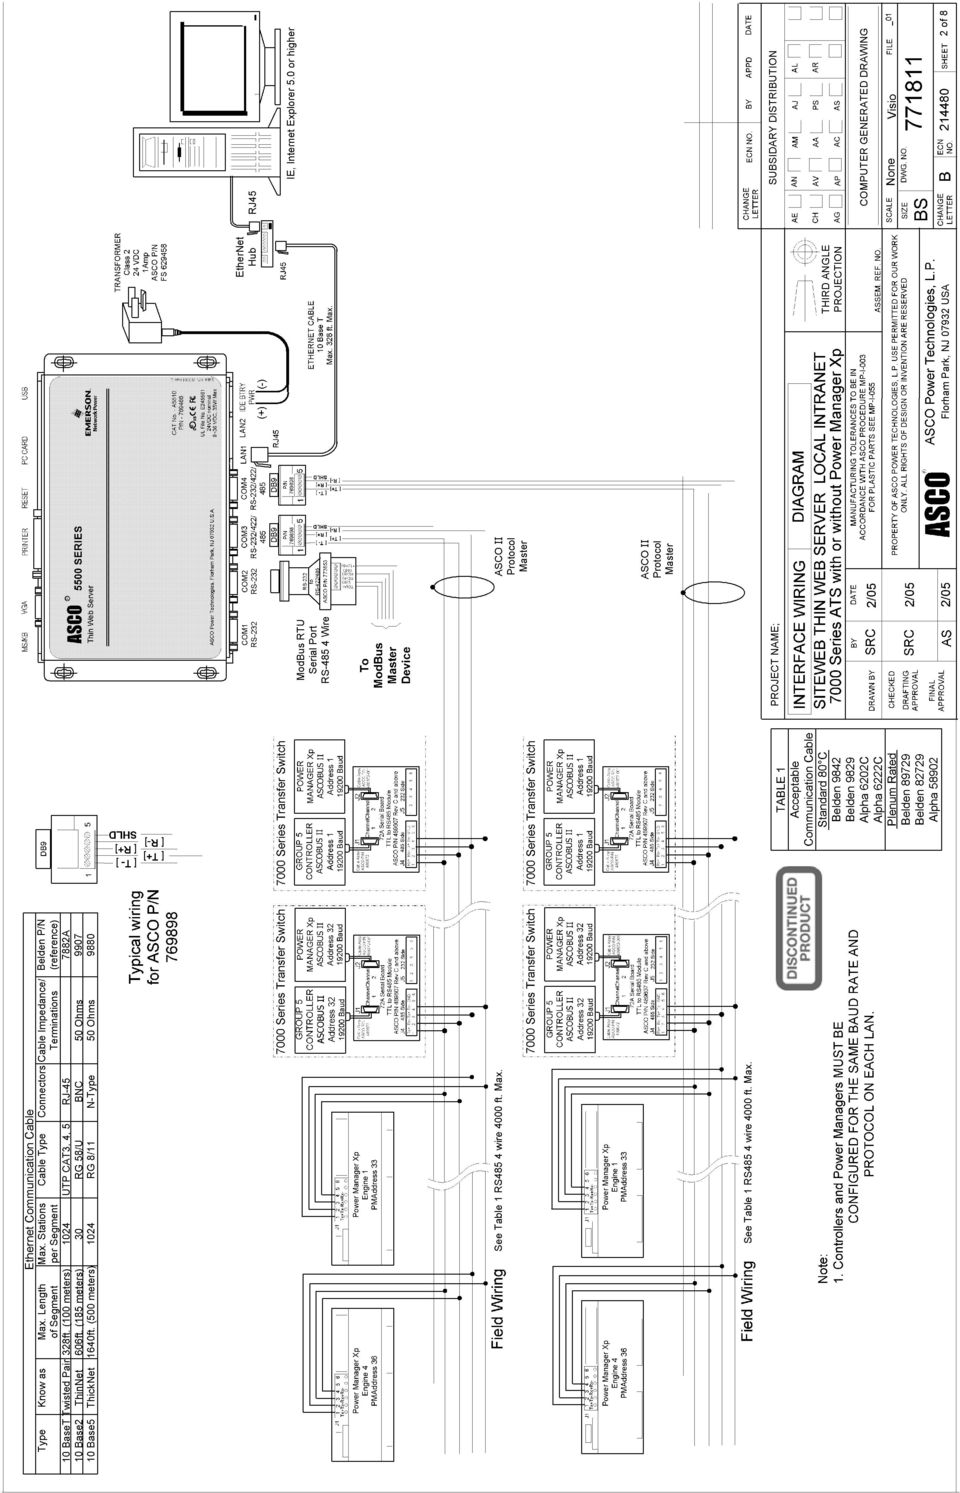 phoenix connector wiring diagram